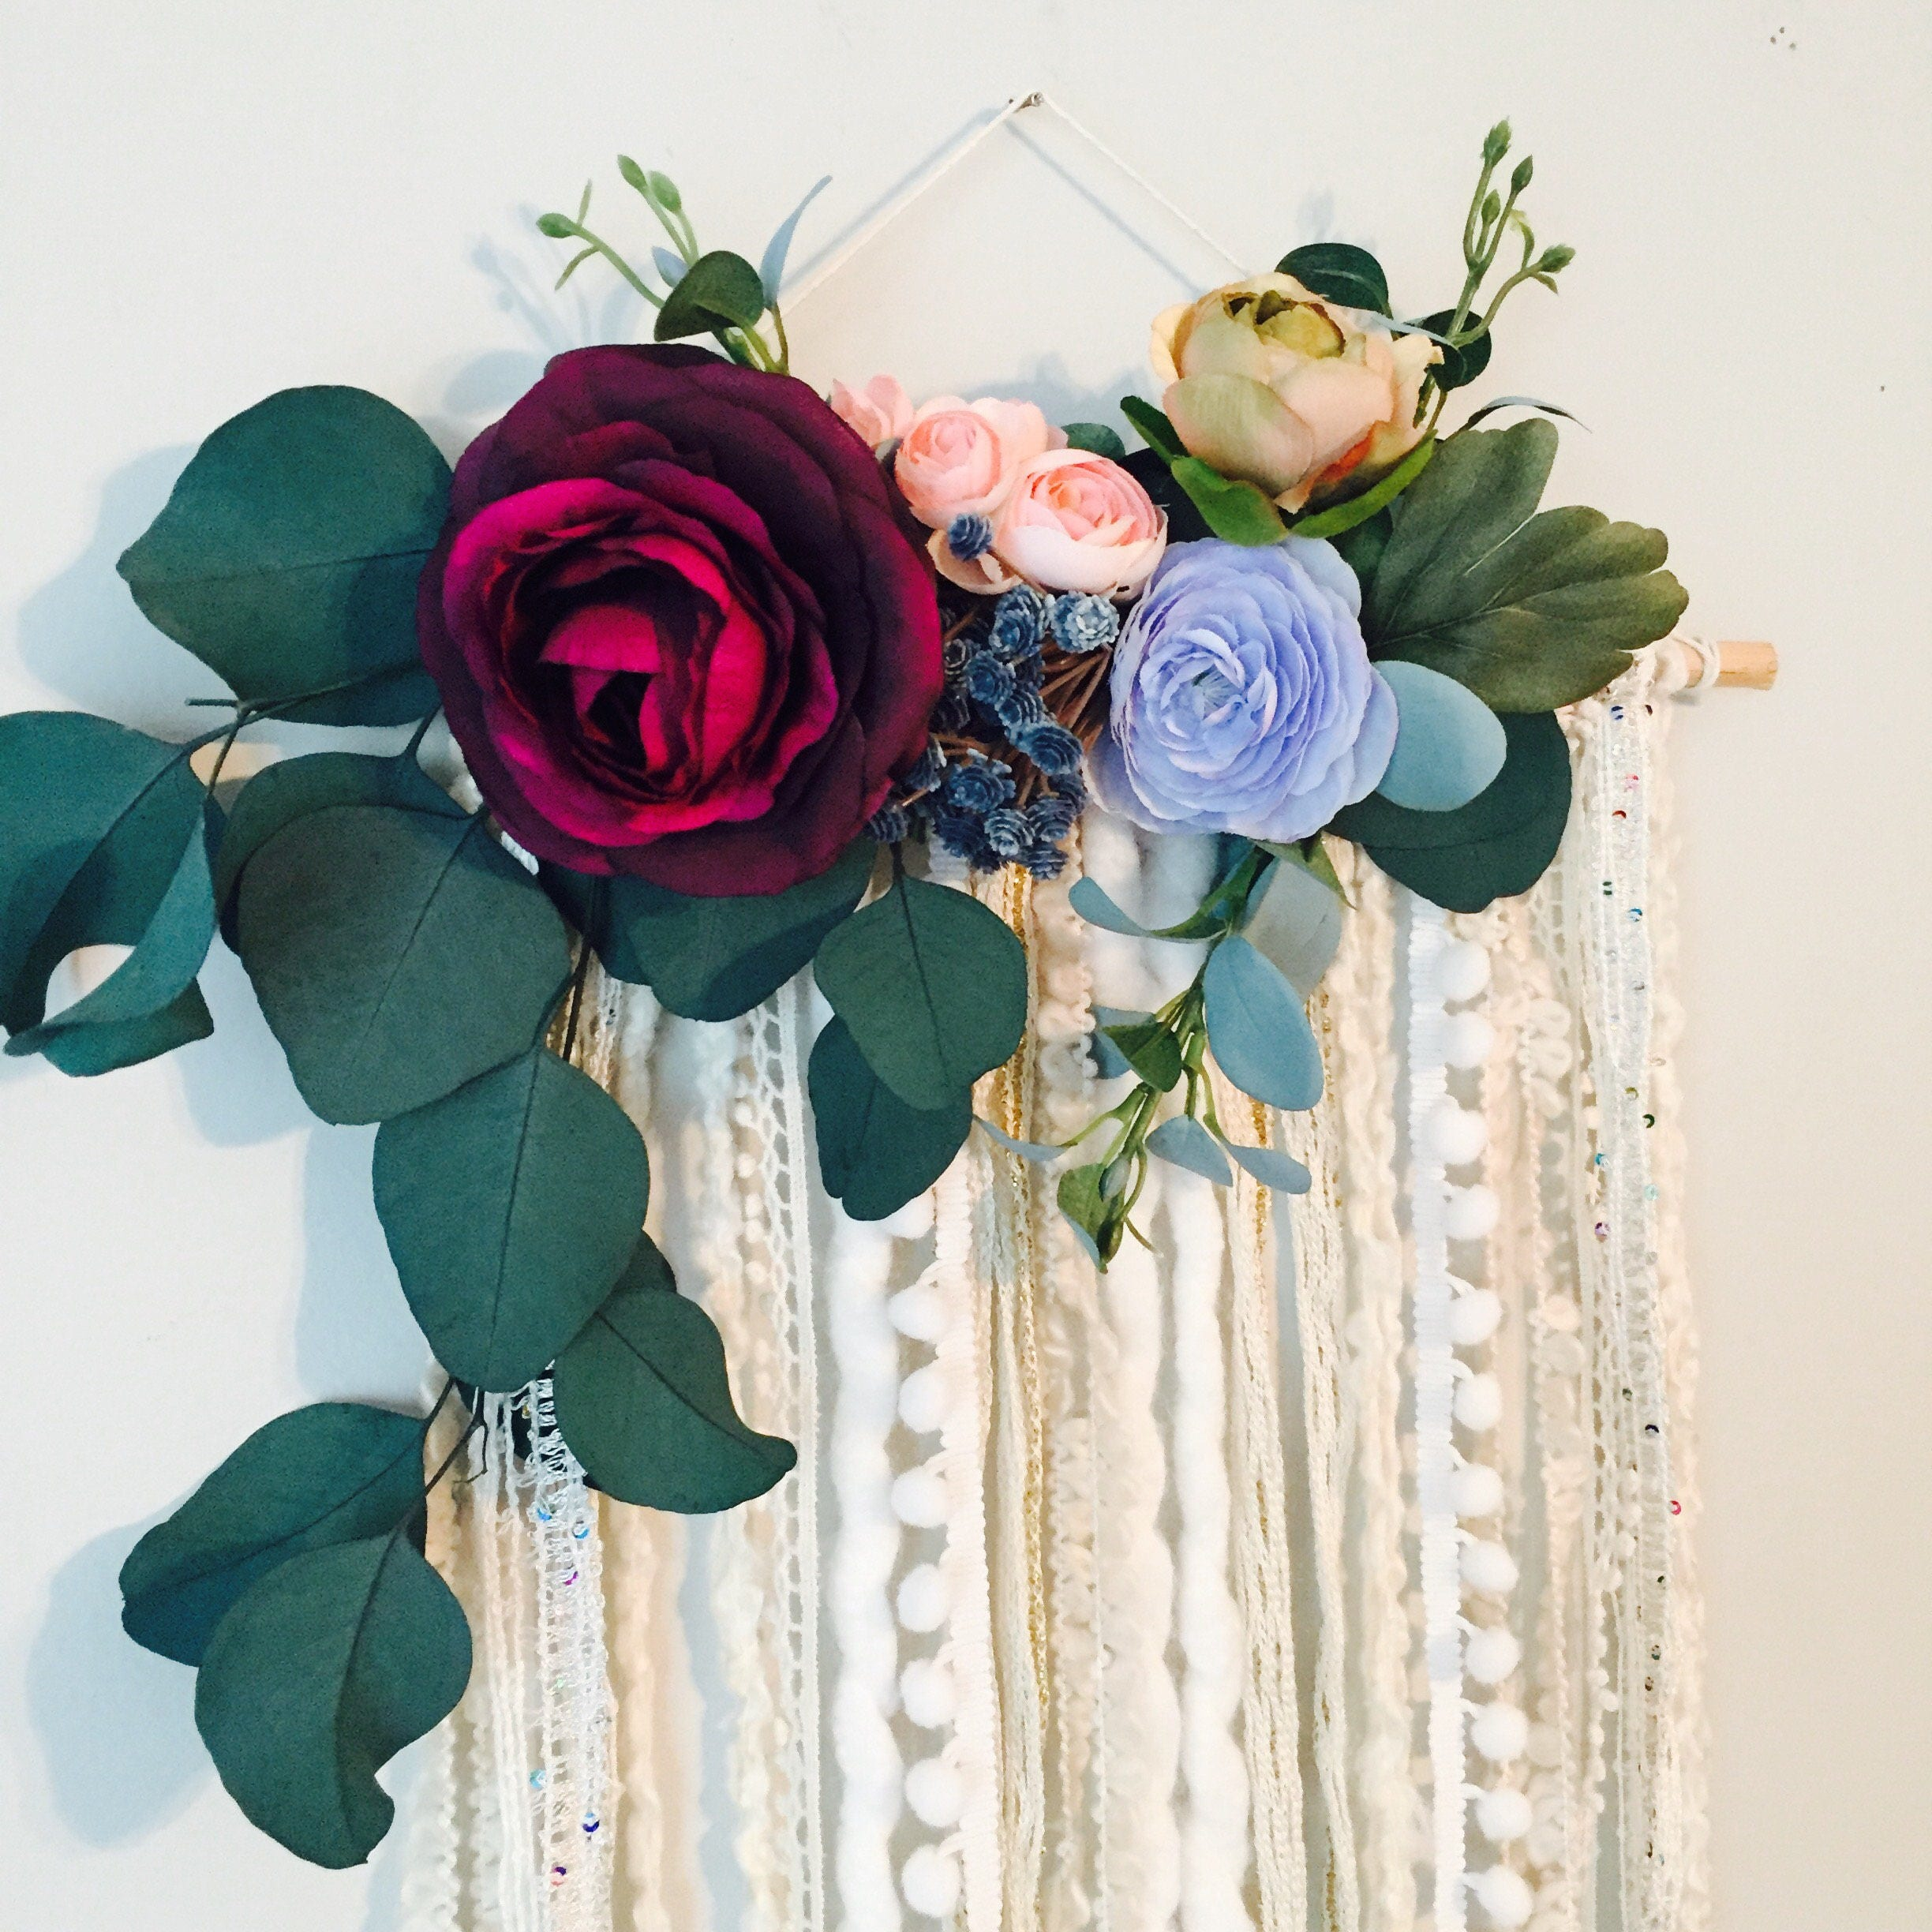 ombre pin own dried juliettelaura blogspot com decor to wall rose your on make how flower